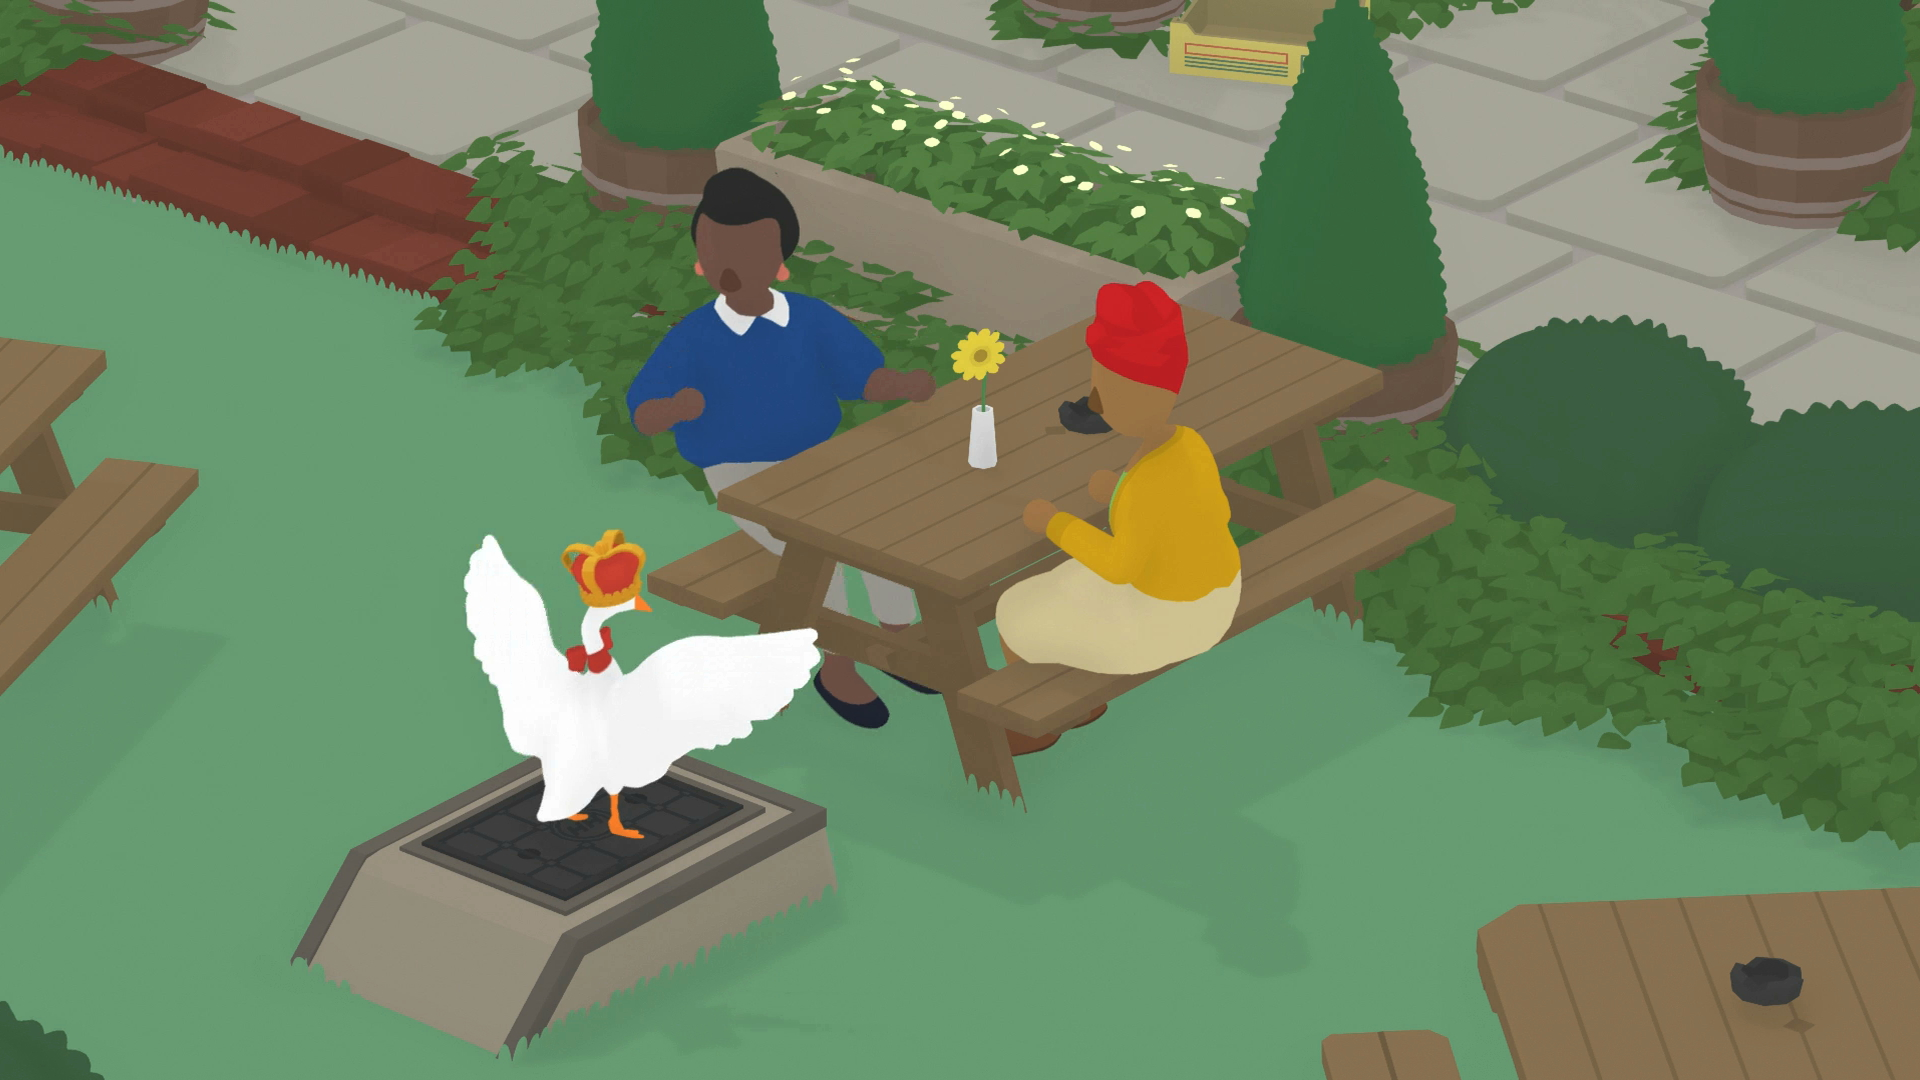 The Untitled Goose Game Is Now The Million-Selling Goose Game